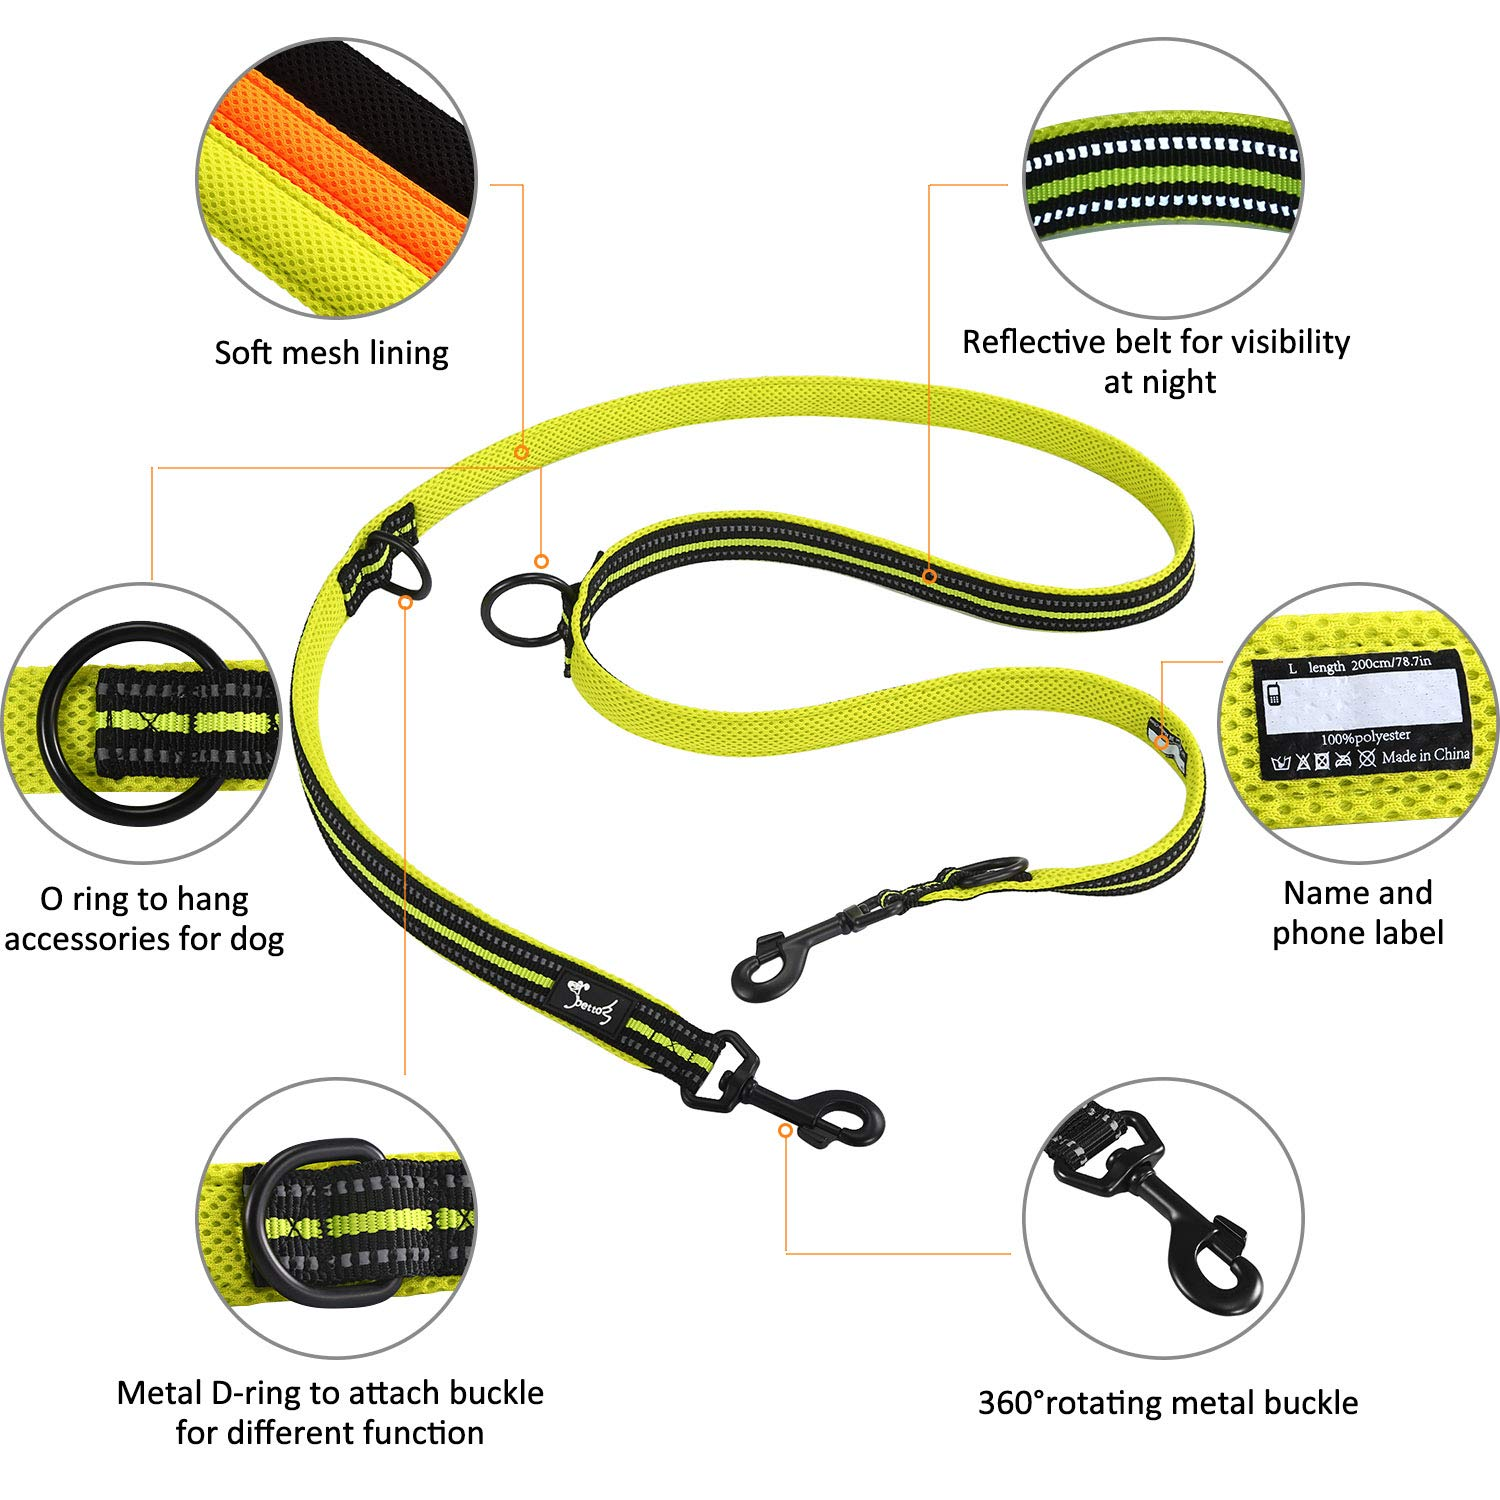 L:1 Width,3.6Ft-6.6Ft, Orange Multi-functional Dog Leash Adjustable Rope Durable Nylon Reflective Material Pet Leash for Walking Training Running 2 dogs to 3 different sizes